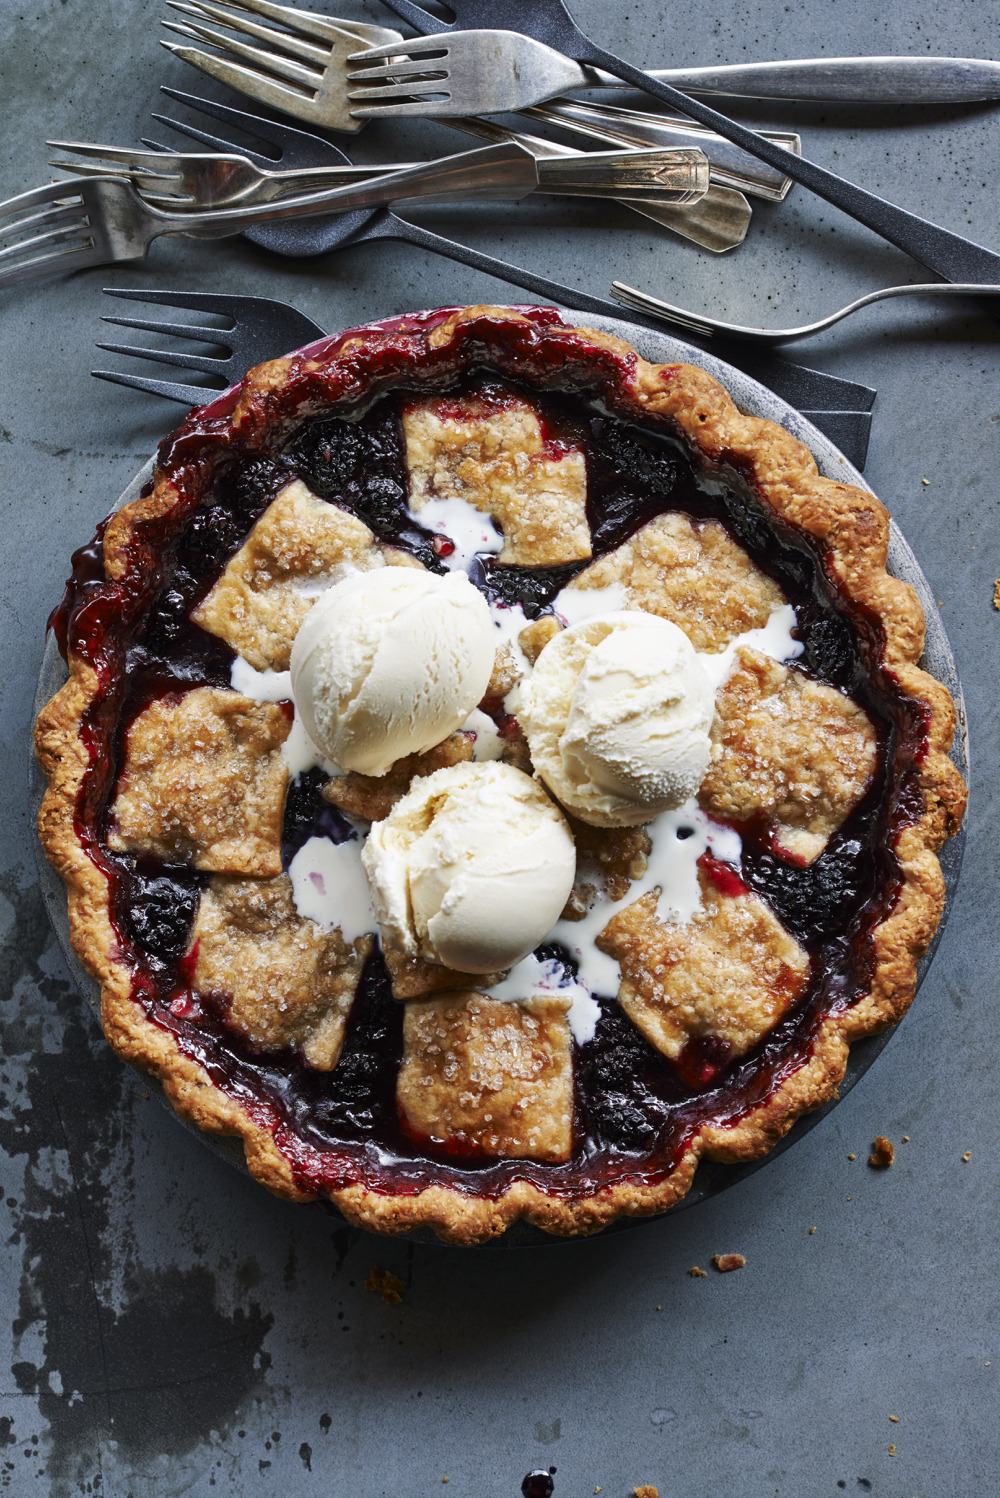 sunsetmag :      Anjou Bakery's Marionberry Pie       I am so missing my marionberry plants. Over two damp, dank summers they were  overtaken by a fungal disease–botrytis .  I'll replant this winter after two seasons without marionberries and then I'll make this marionberry pie.